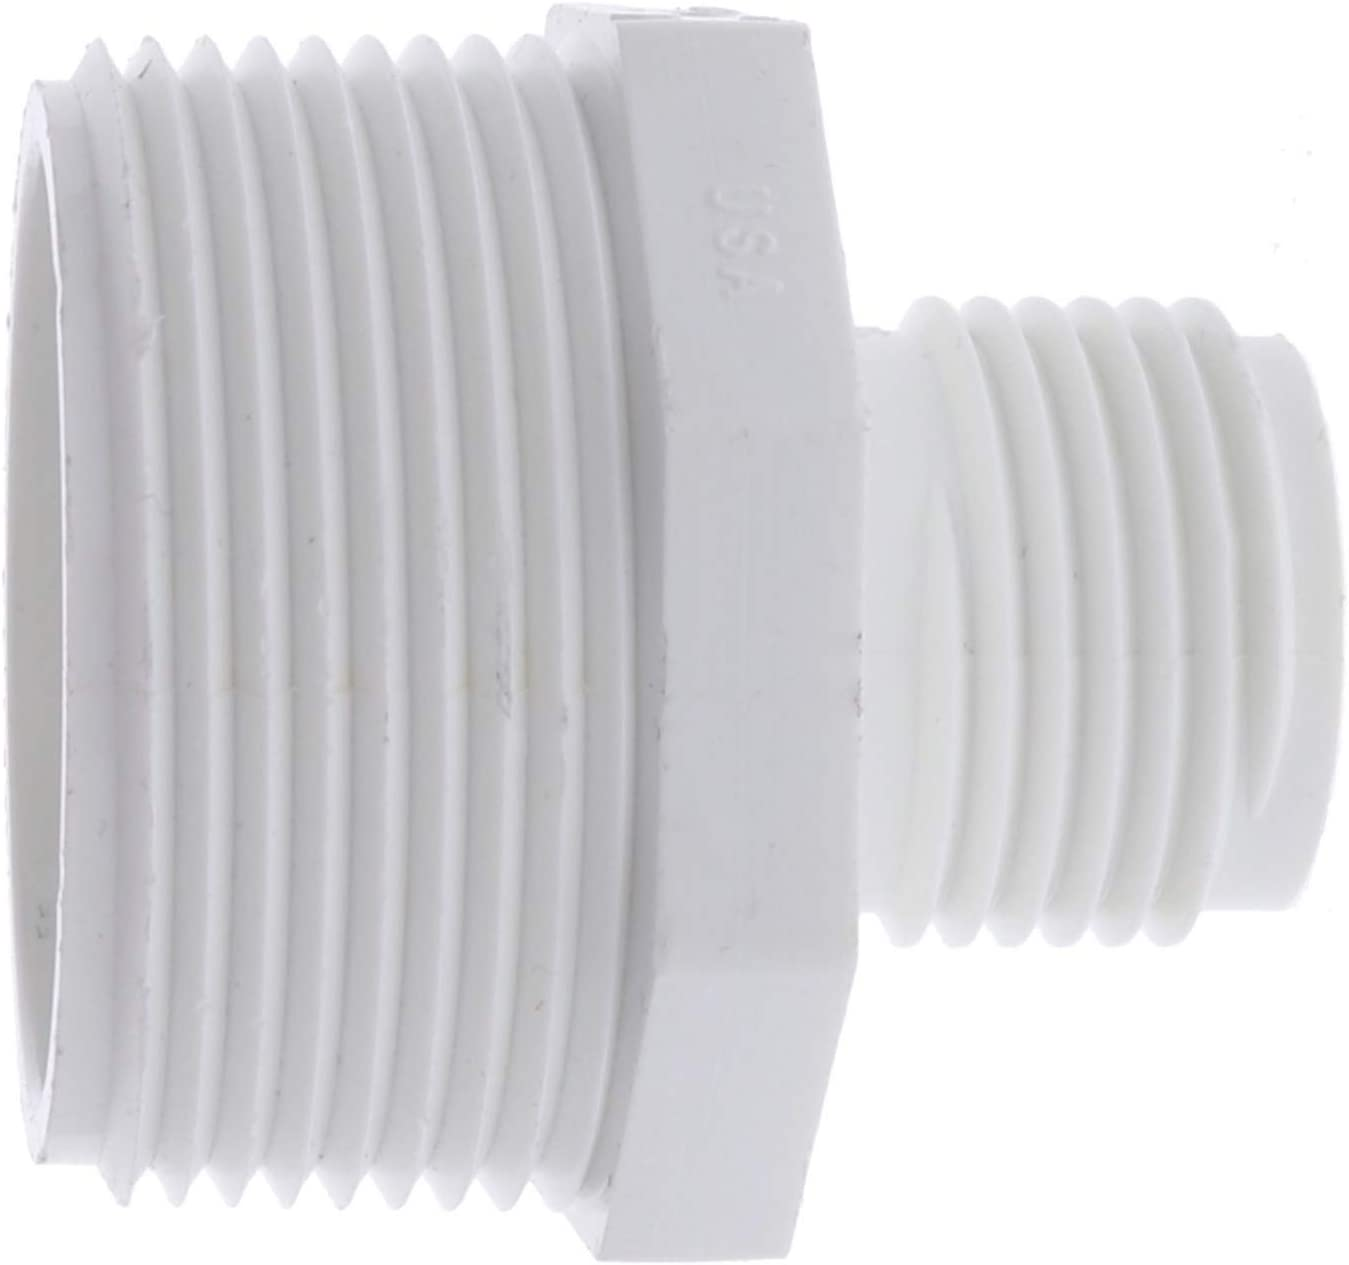 "PVC Garden Hose Adapter (Male 1.5"" NPT x 3/4"" GHT) for Sump Pump"